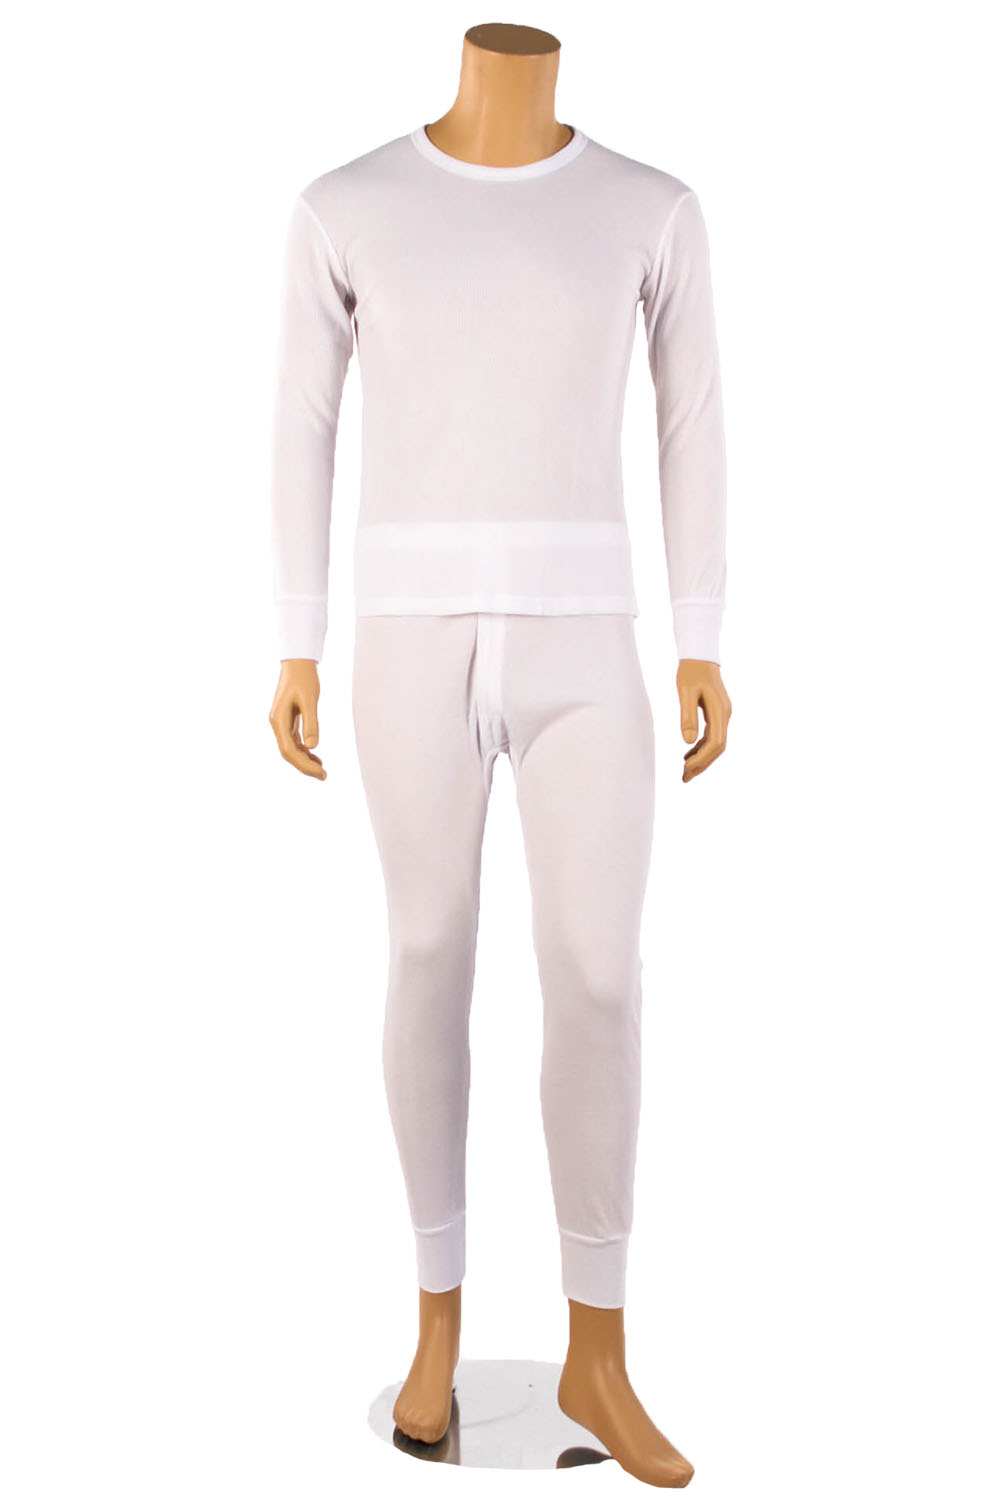 Mens 2pc 100% COTTON Thermal Underwear Set Long Johns Top & Bottom ...